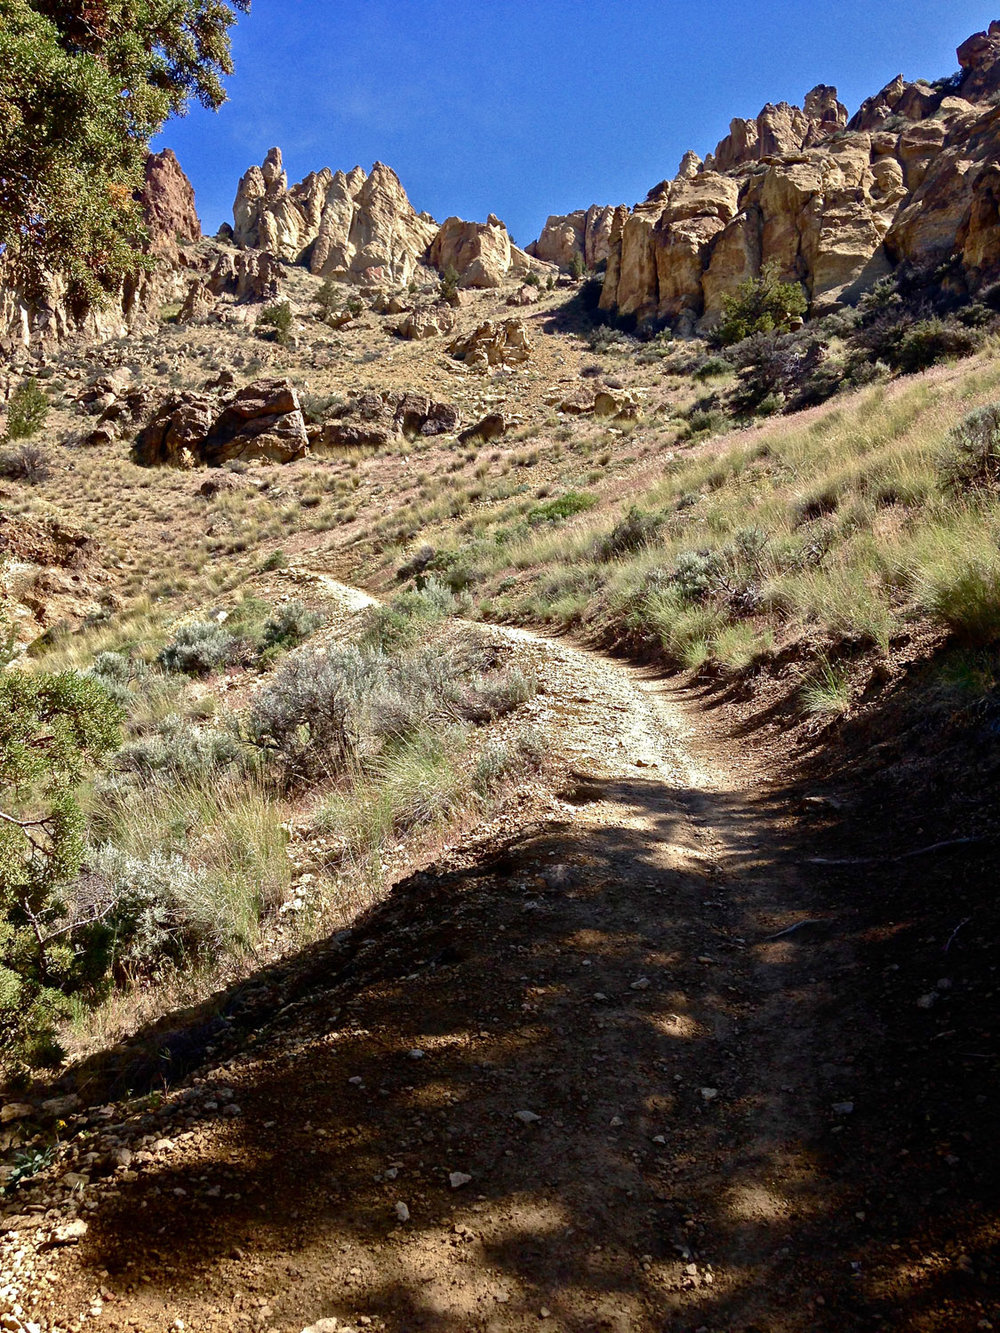 The Burma Road Trail starts off in the trees, but only briefly at Smith Rock State Park.